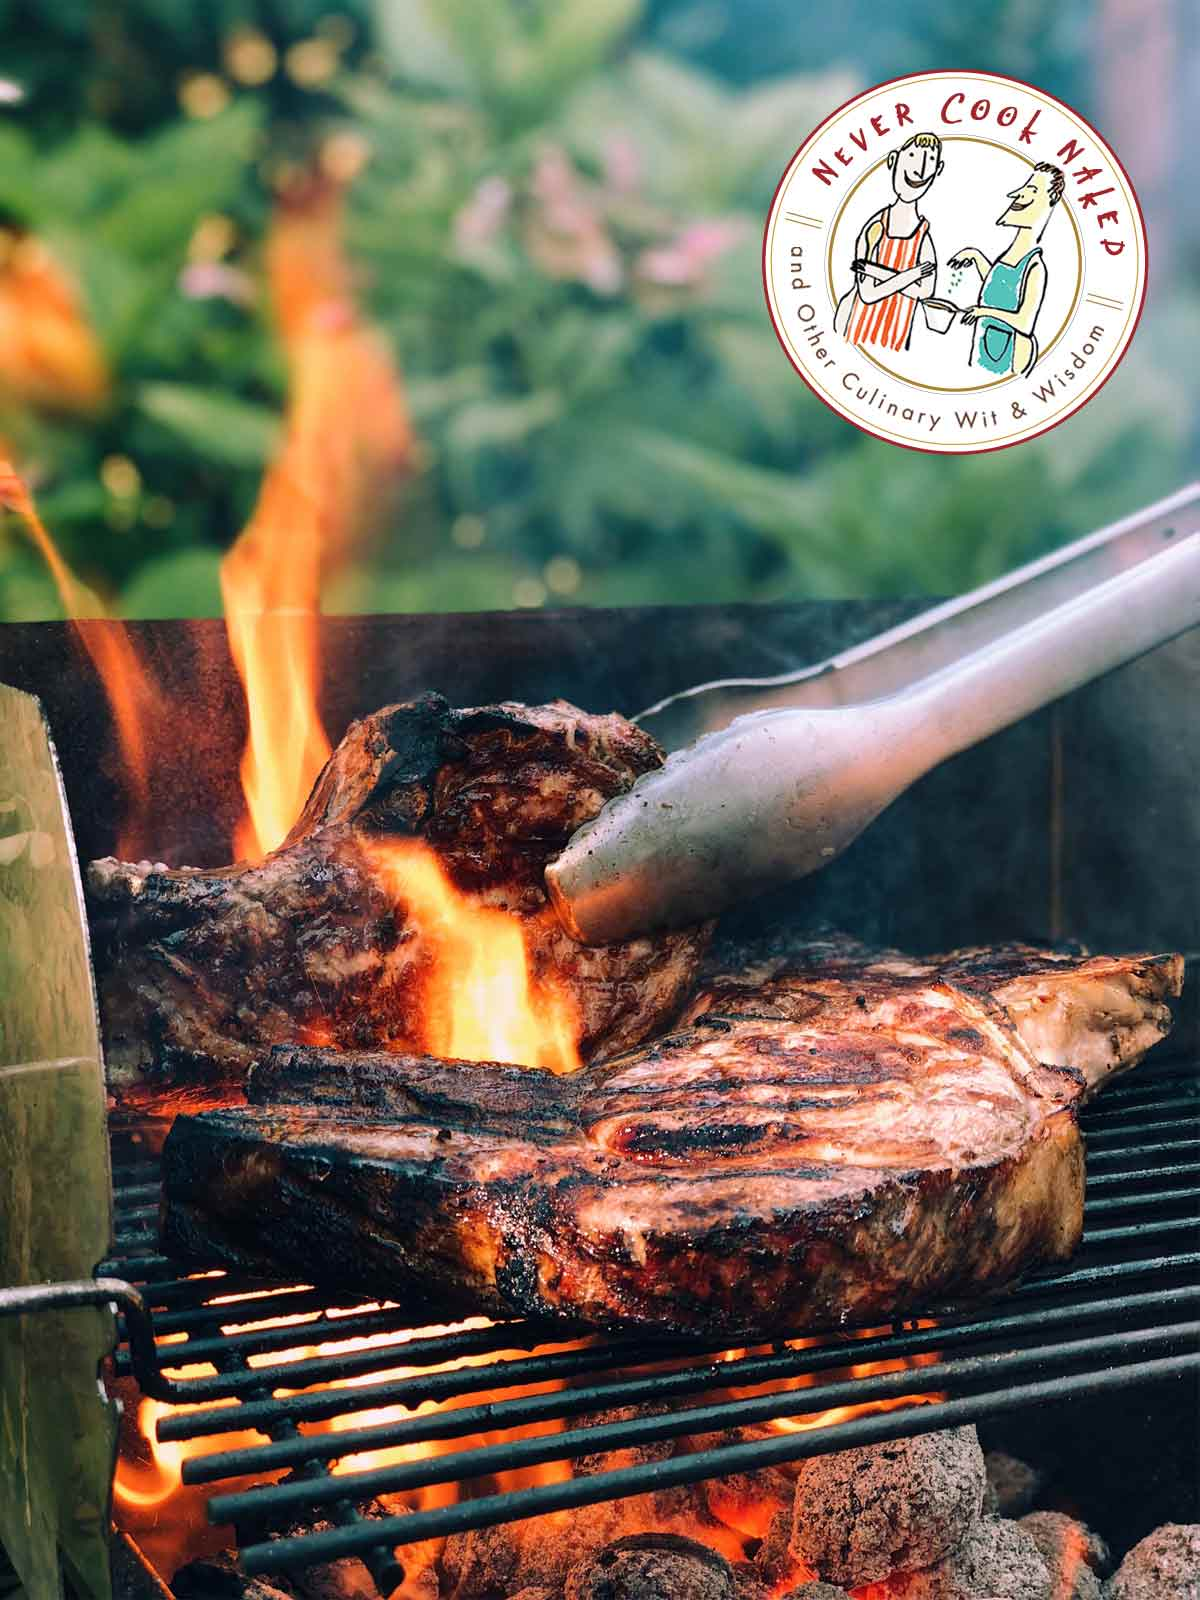 In answer to the question on how to keep food from sticking to the grill, two large chops on a grill, one being turned by metal tongs.